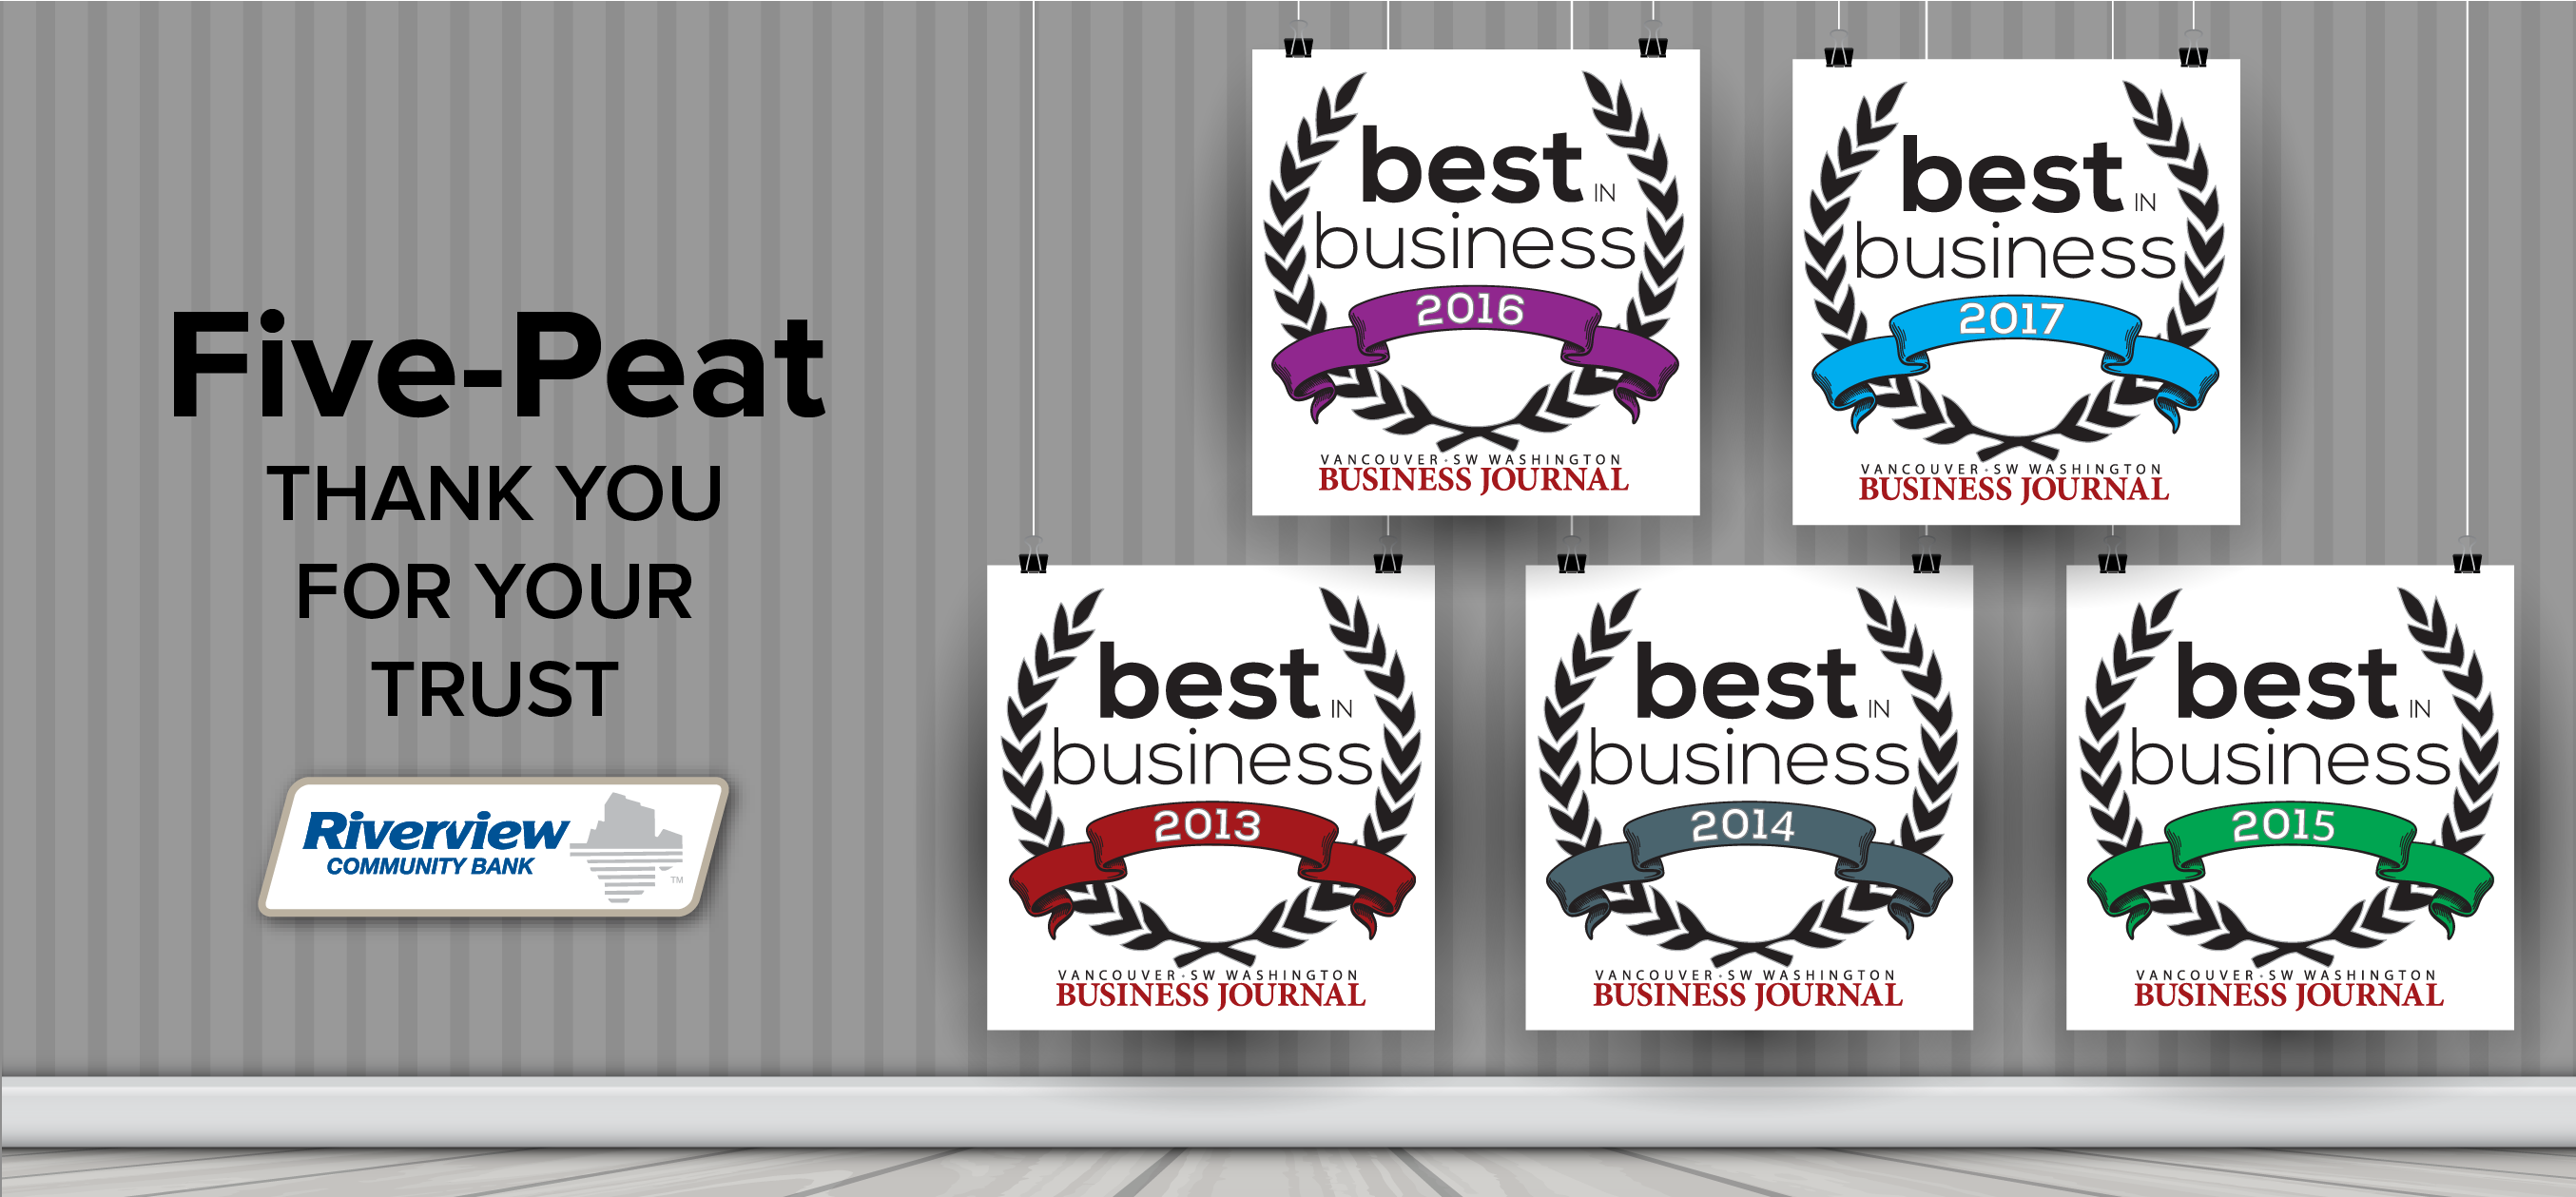 VBJ Best In Business